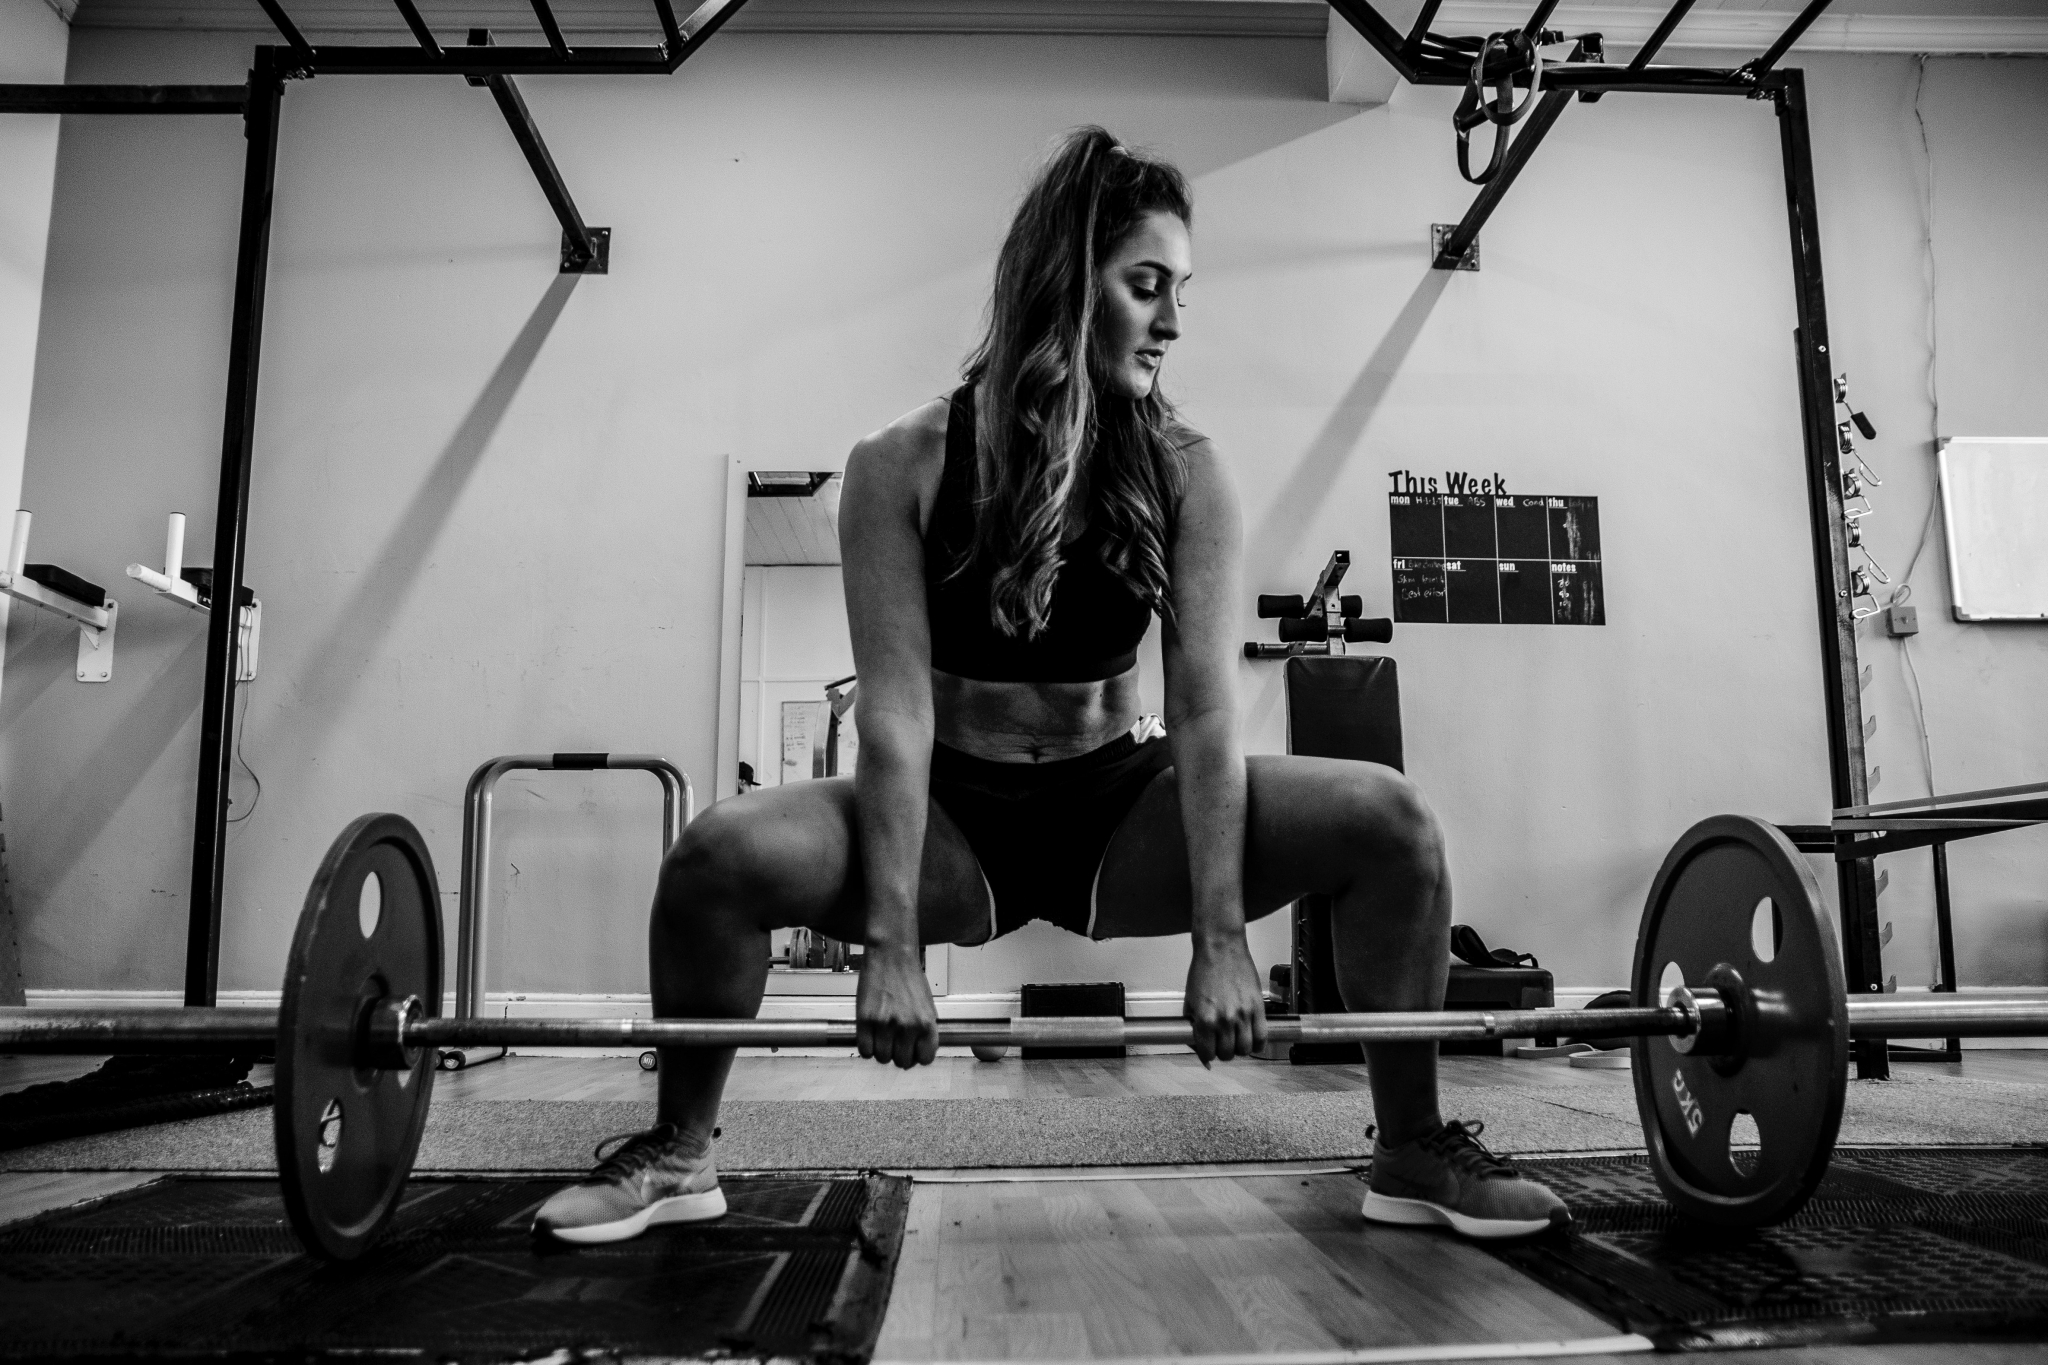 Black and white image of woman weight training / Photo by Derwin Edwards from Pexels